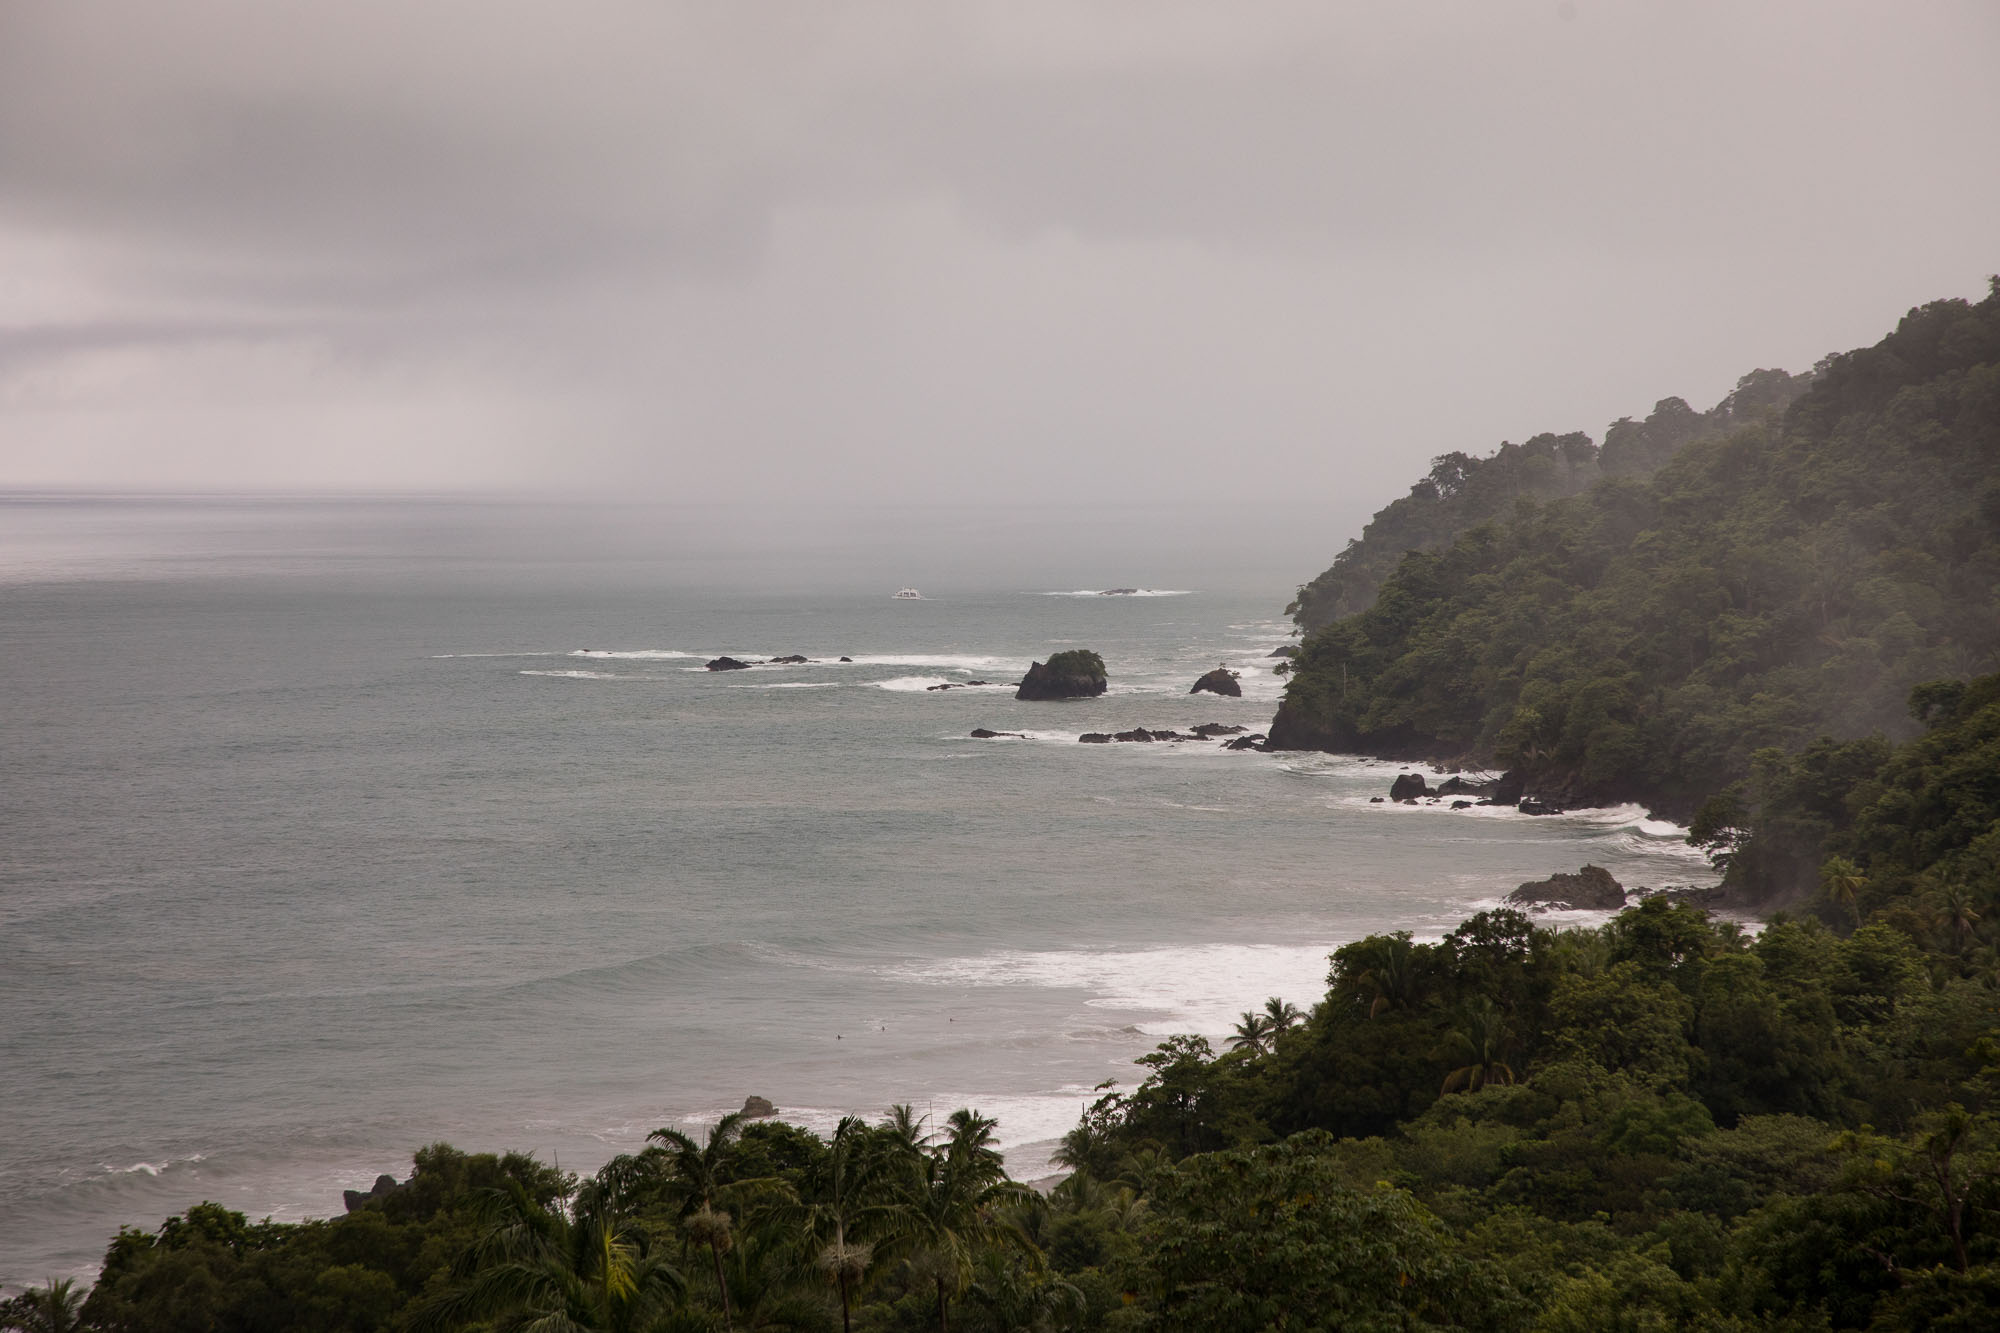 The stormy coast of Costa Rica is still lovely